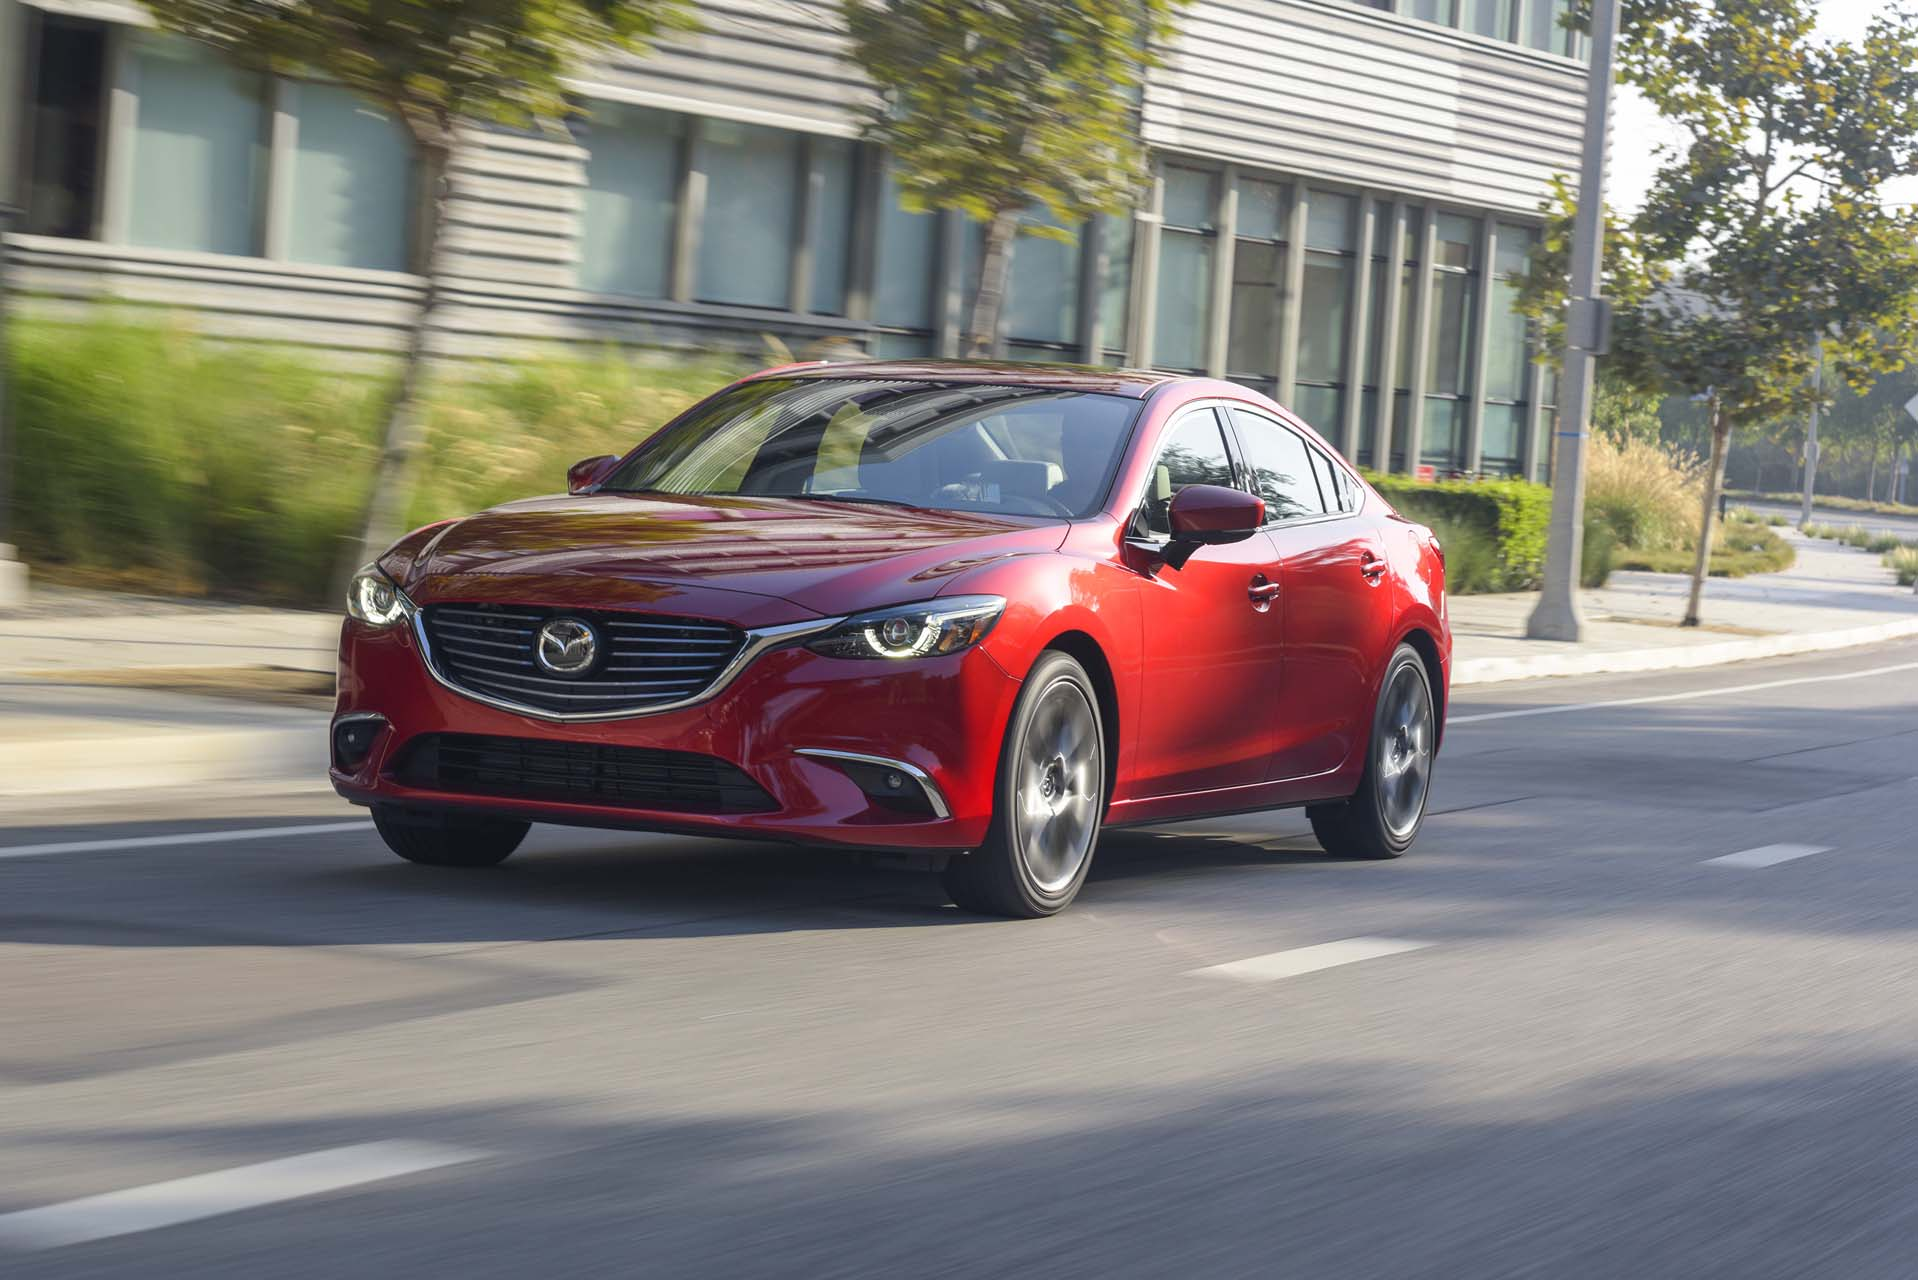 2017 mazda mazda6 safety review and crash test ratings the car connection. Black Bedroom Furniture Sets. Home Design Ideas